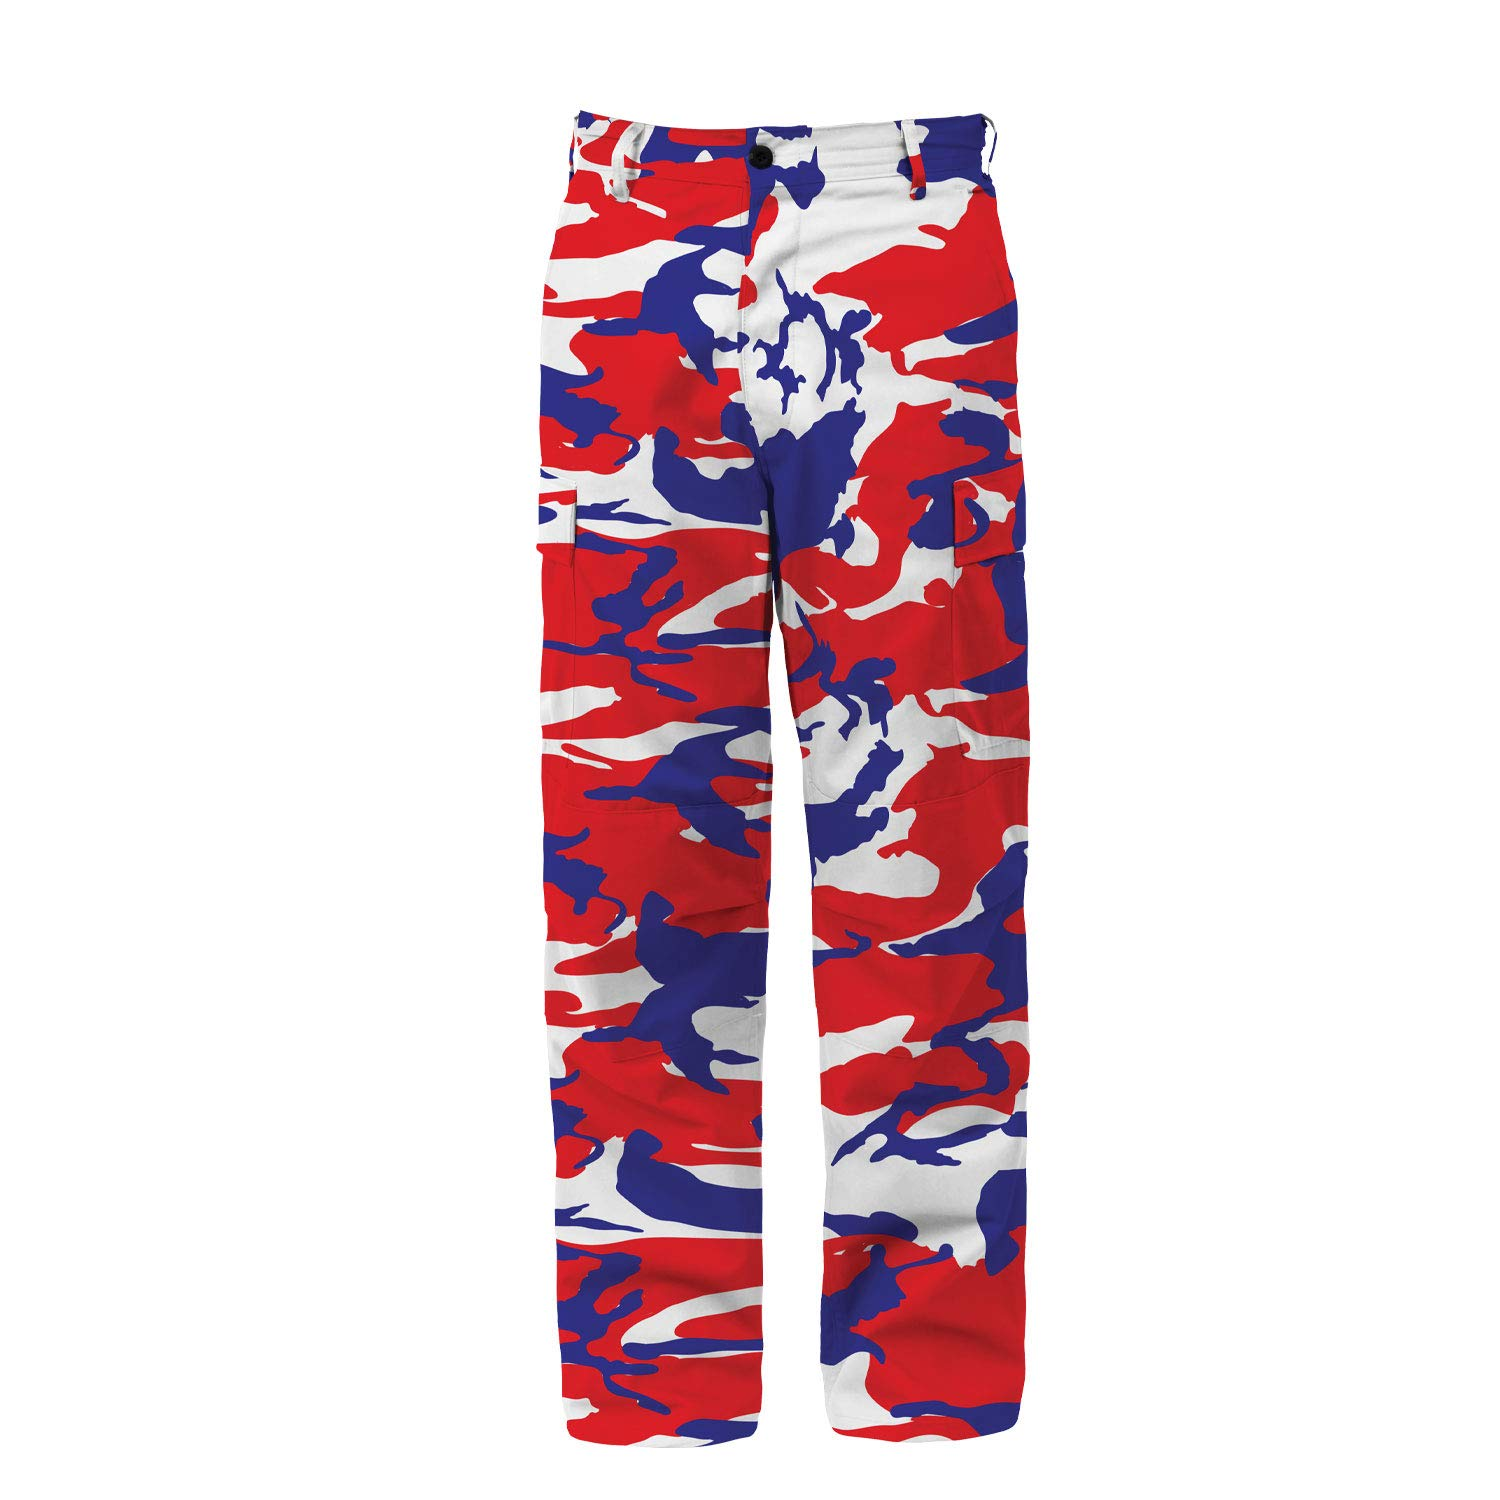 Rothco Camo BDU Pants, Red/White/Blue Camo, S